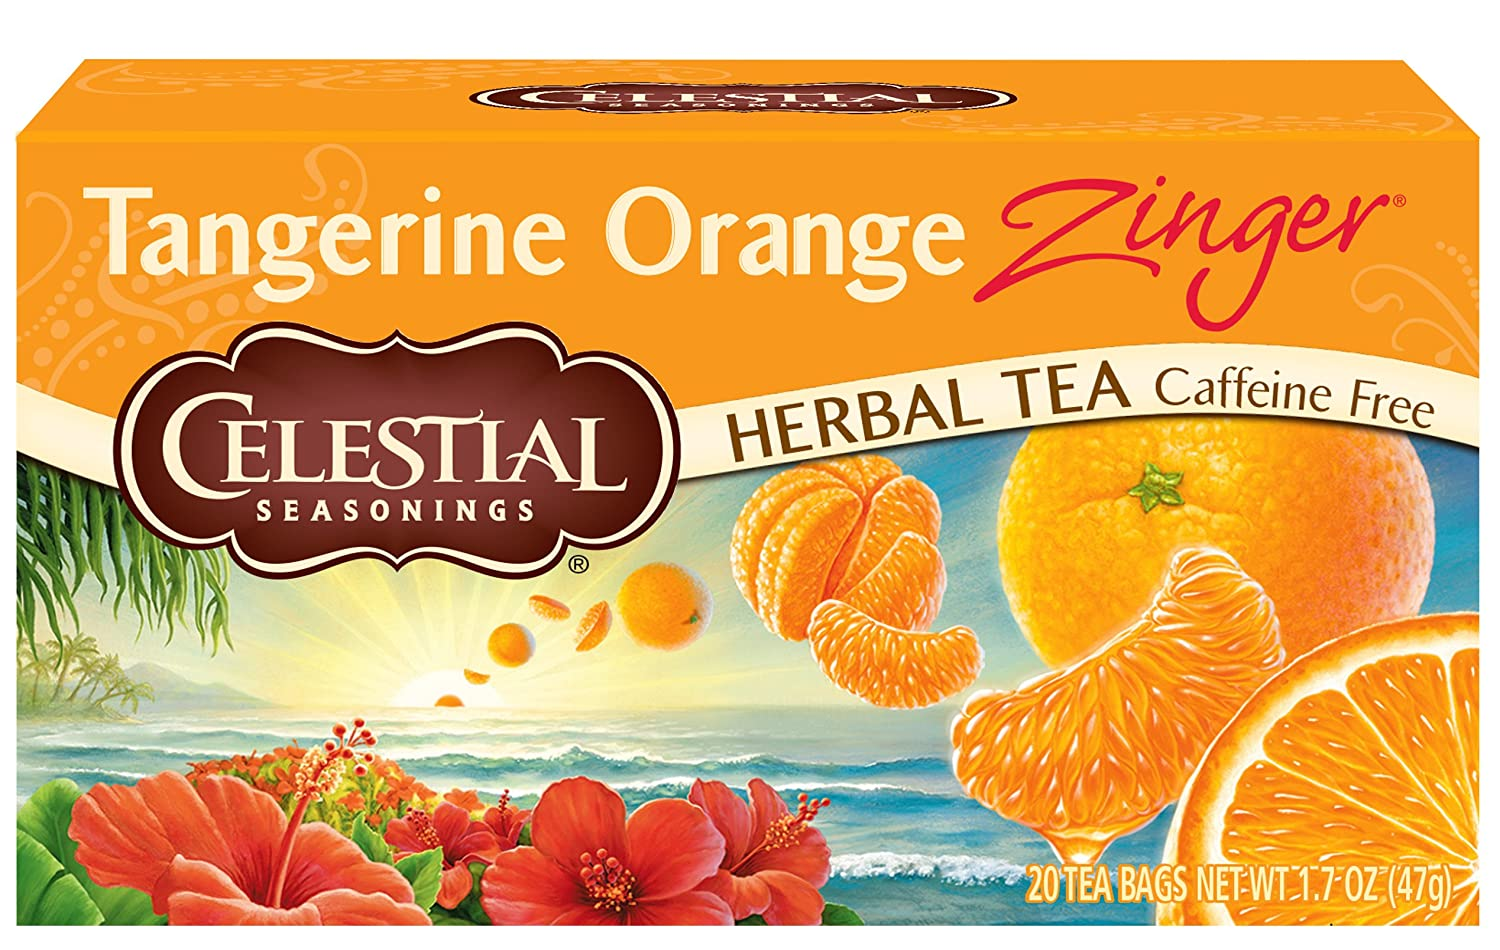 Celestial Seasonings Herbal Tea, Tangerine Orange Zinger, 20 Count Box